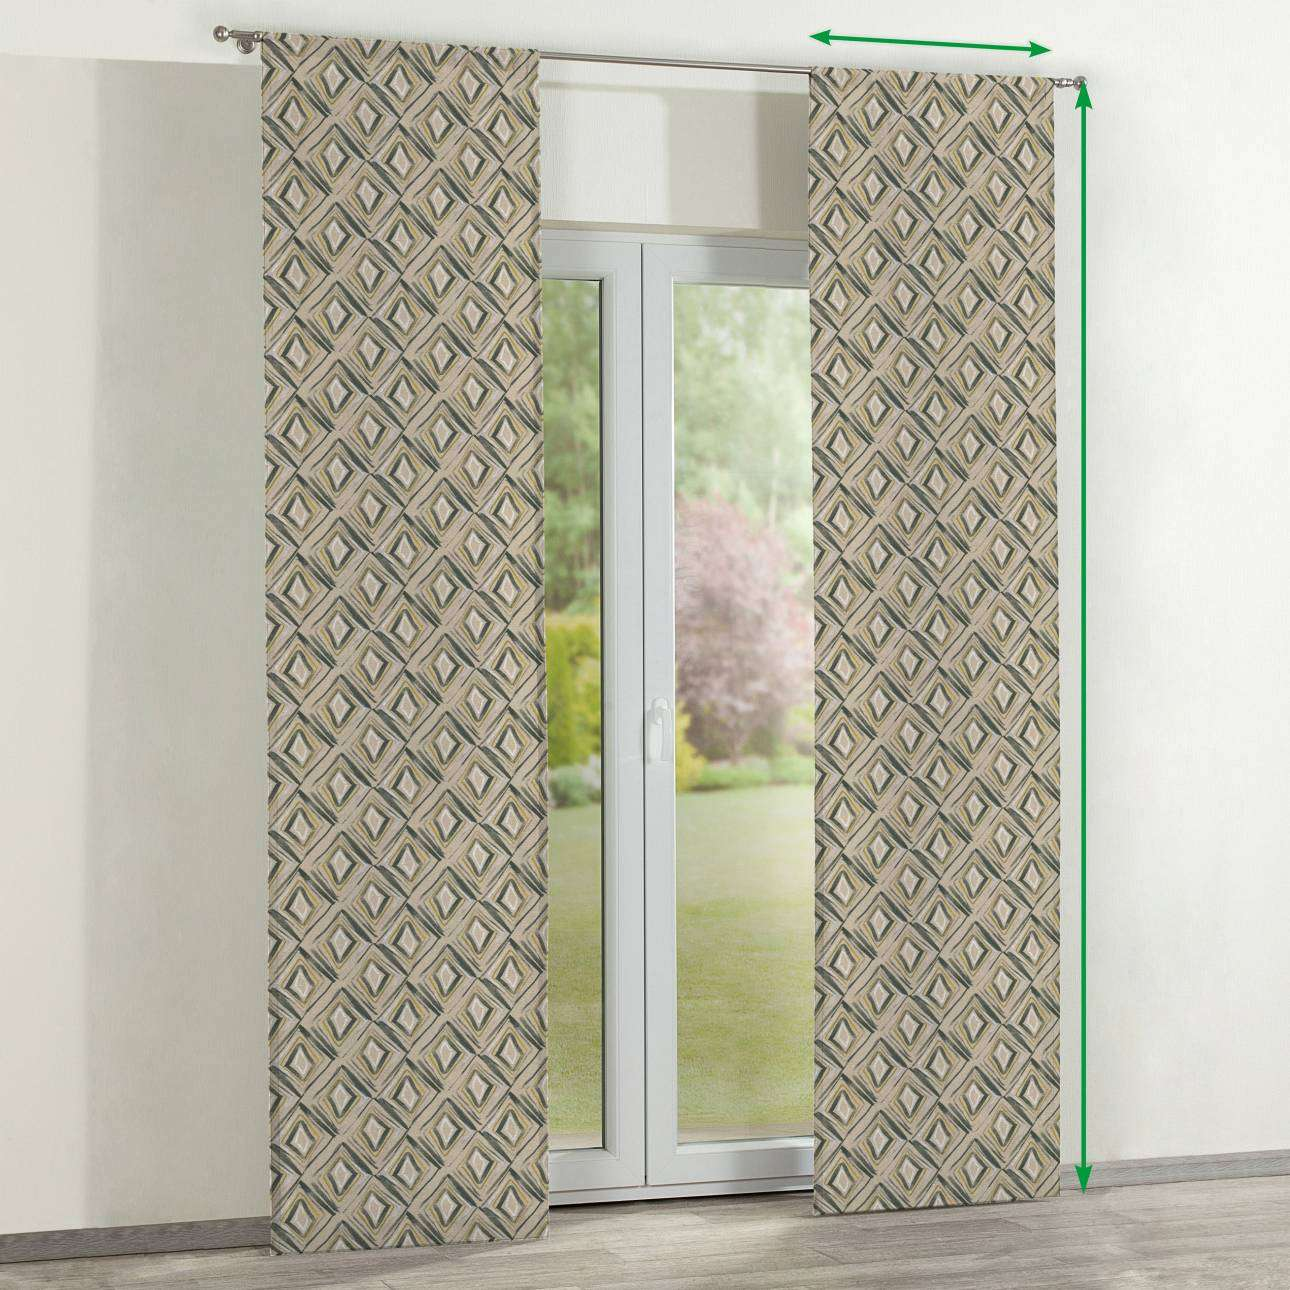 Slot panel curtains – Set of 2 in collection Londres, fabric: 140-46